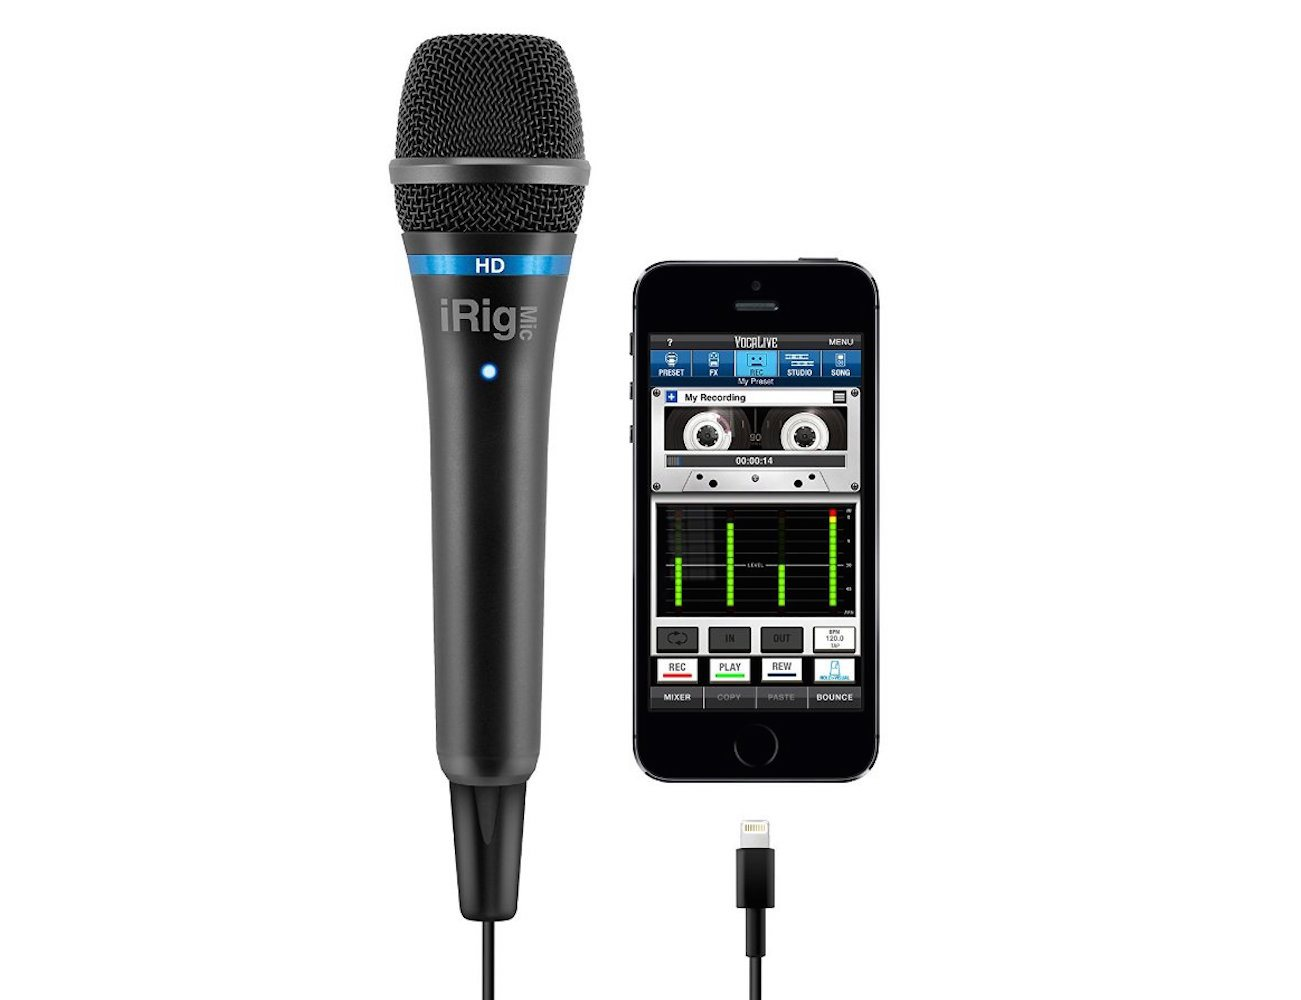 irig-mic-hd-for-ios-devices-03